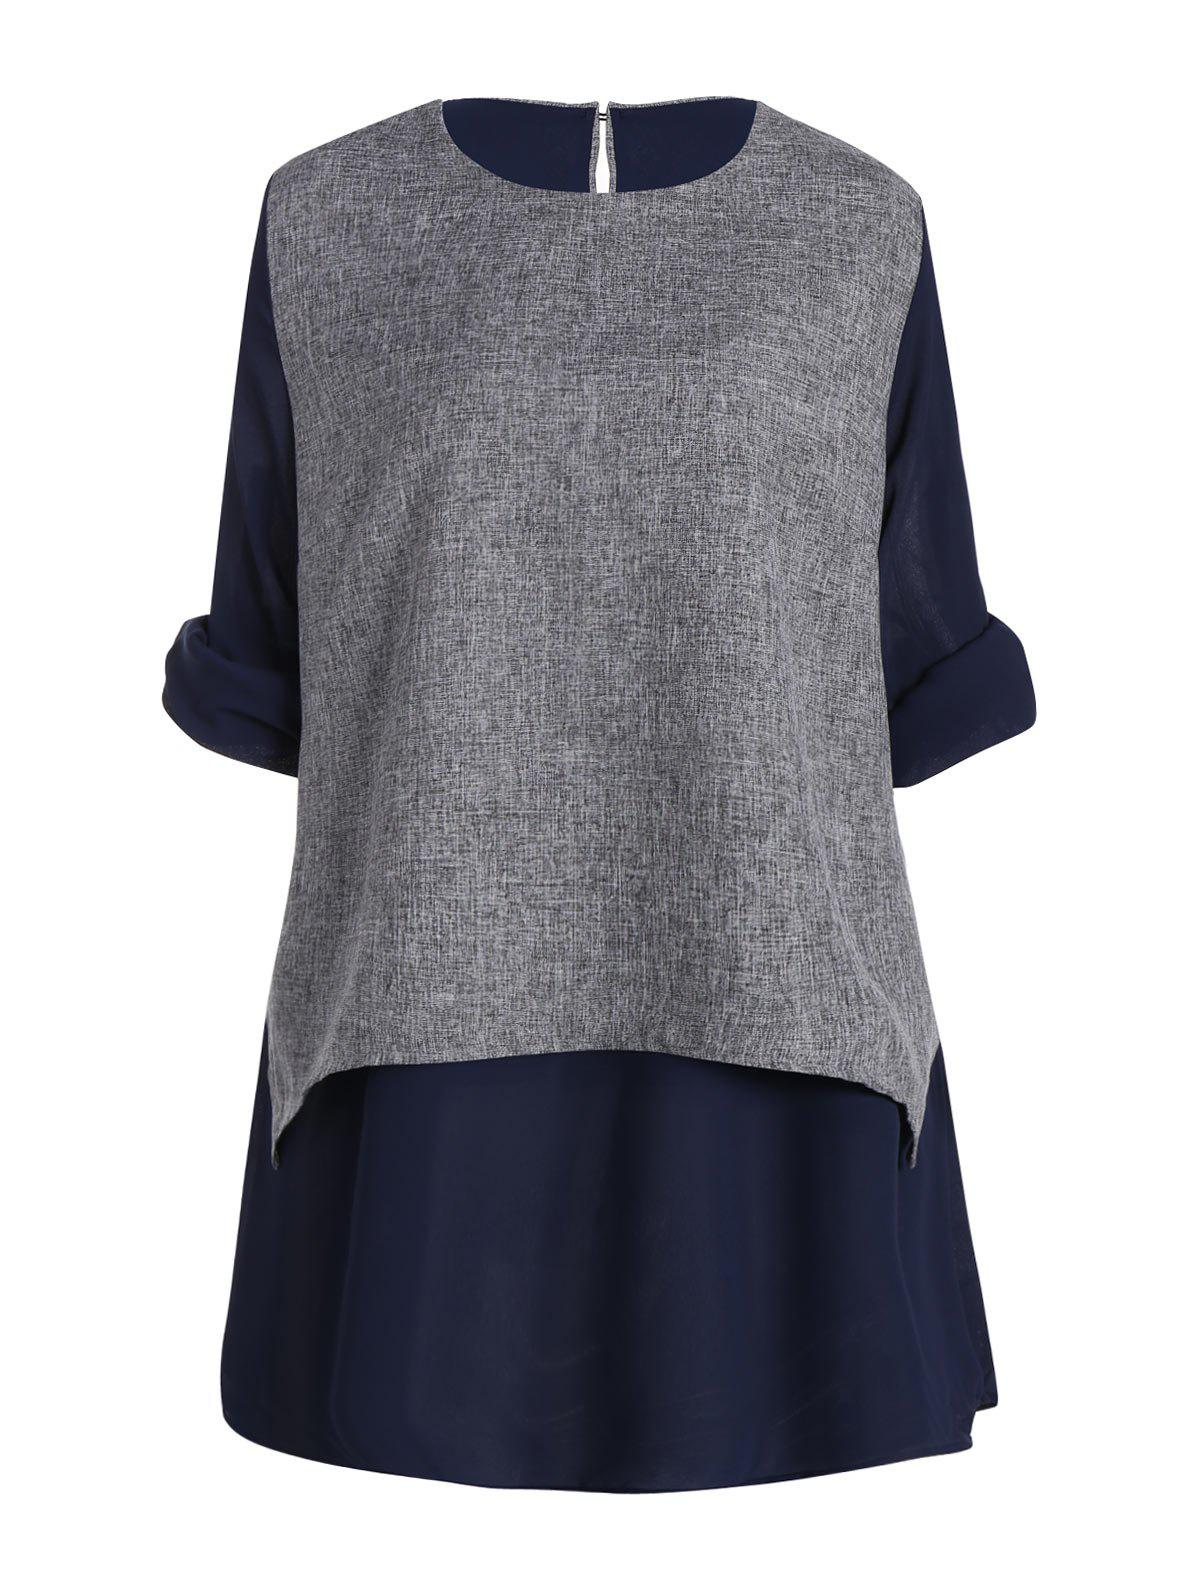 Layering Plus Size Chiffon Long Sleeve TopWOMEN<br><br>Size: 5XL; Color: PURPLISH BLUE; Material: Cotton Blends,Polyester; Fabric Type: Chiffon; Shirt Length: Long; Sleeve Length: Full; Collar: Round Neck; Style: Fashion; Season: Fall,Spring; Embellishment: Ruffles; Pattern Type: Print; Weight: 0.3600kg; Package Contents: 1 x Top;